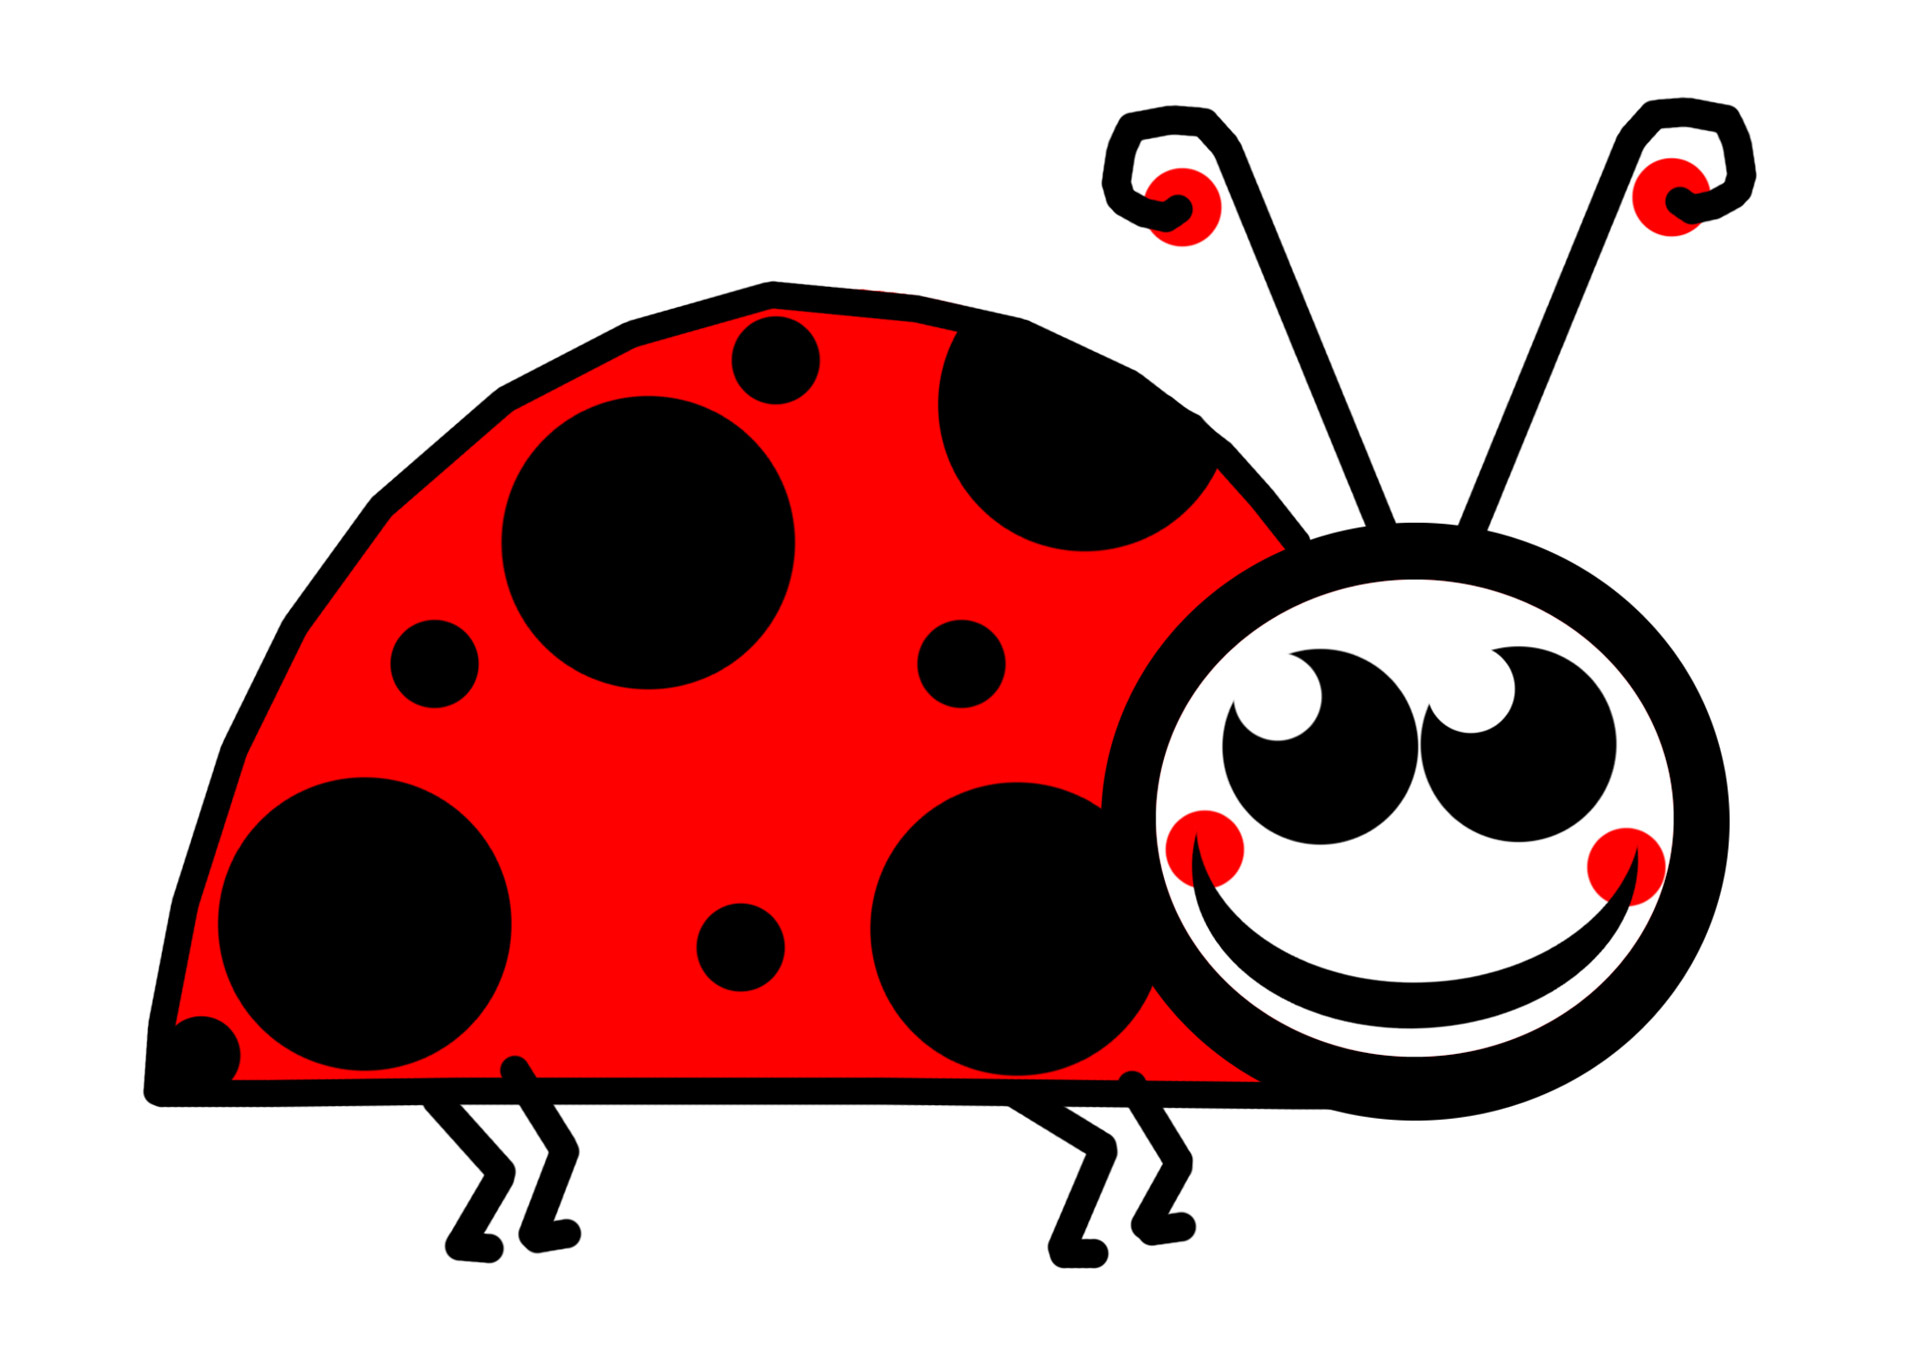 Bugs clipart #16, Download drawings